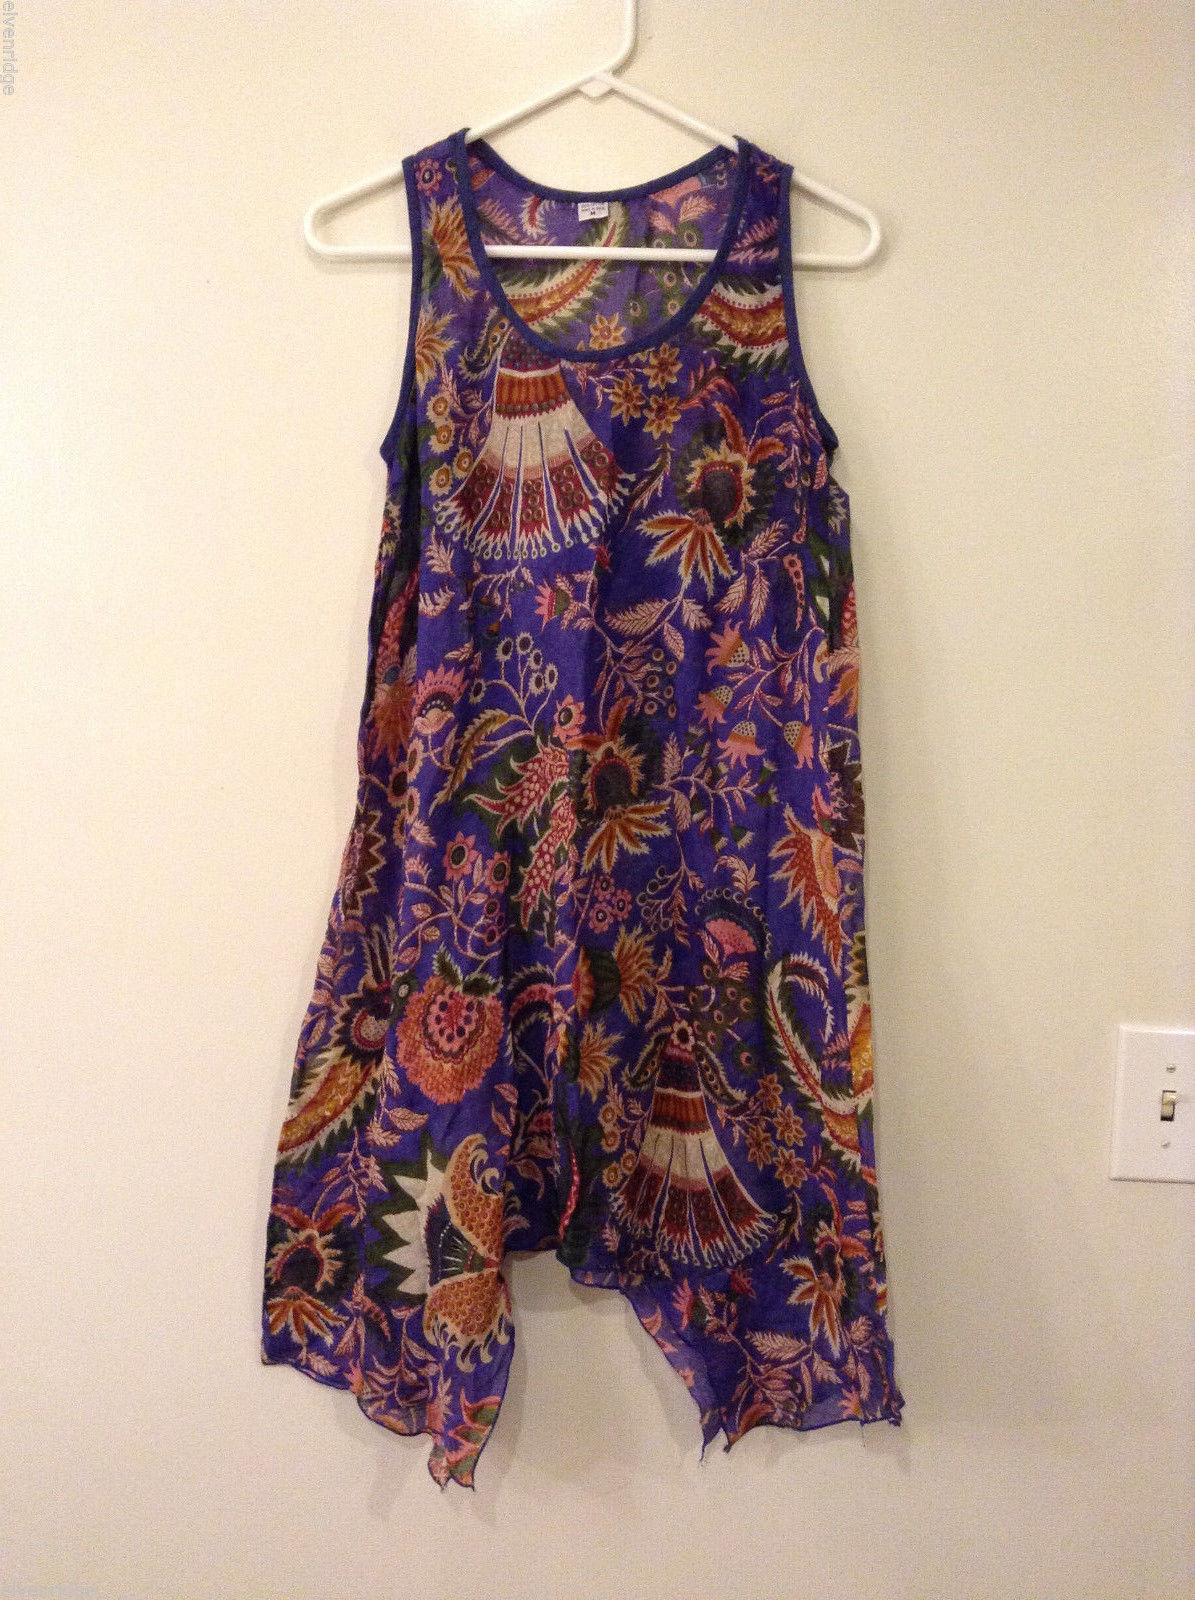 Feather Weight Sleeveless 100% Cotton Floral Summer Dress or Cover Up, size M